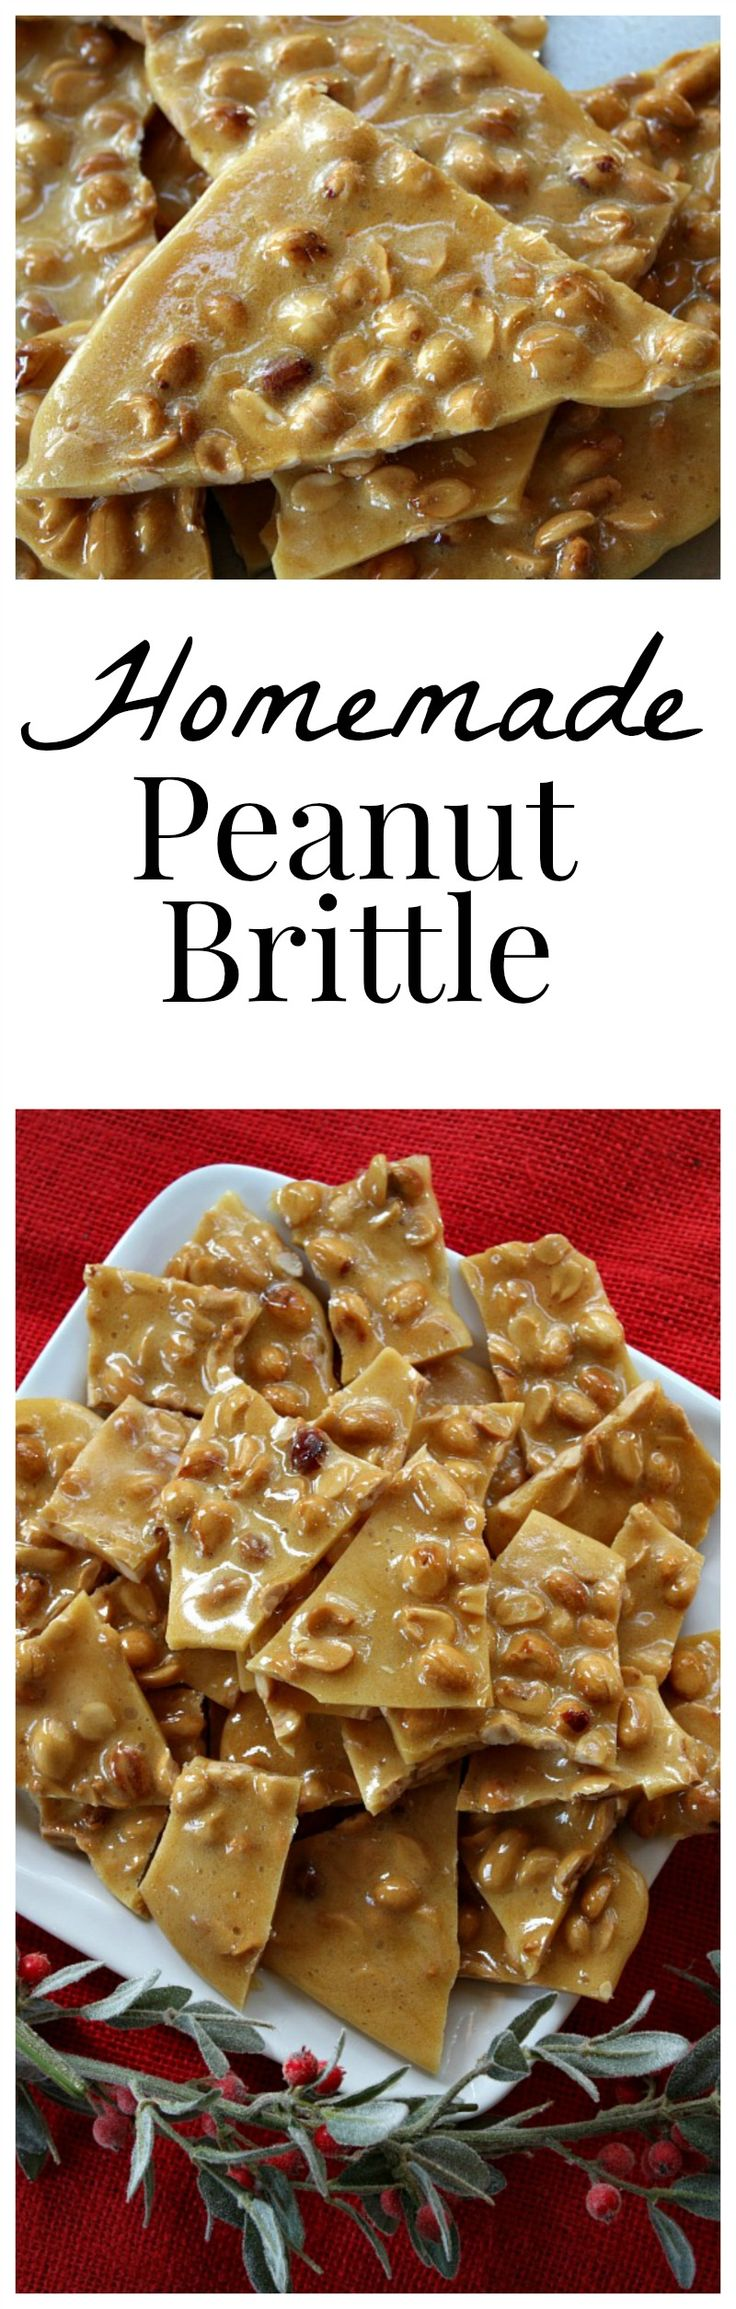 Easy Homemade Peanut Brittle Recipe : from RecipeGirl.com : perfect recipe for the holidays.  Simple instructions and a How-To video included.